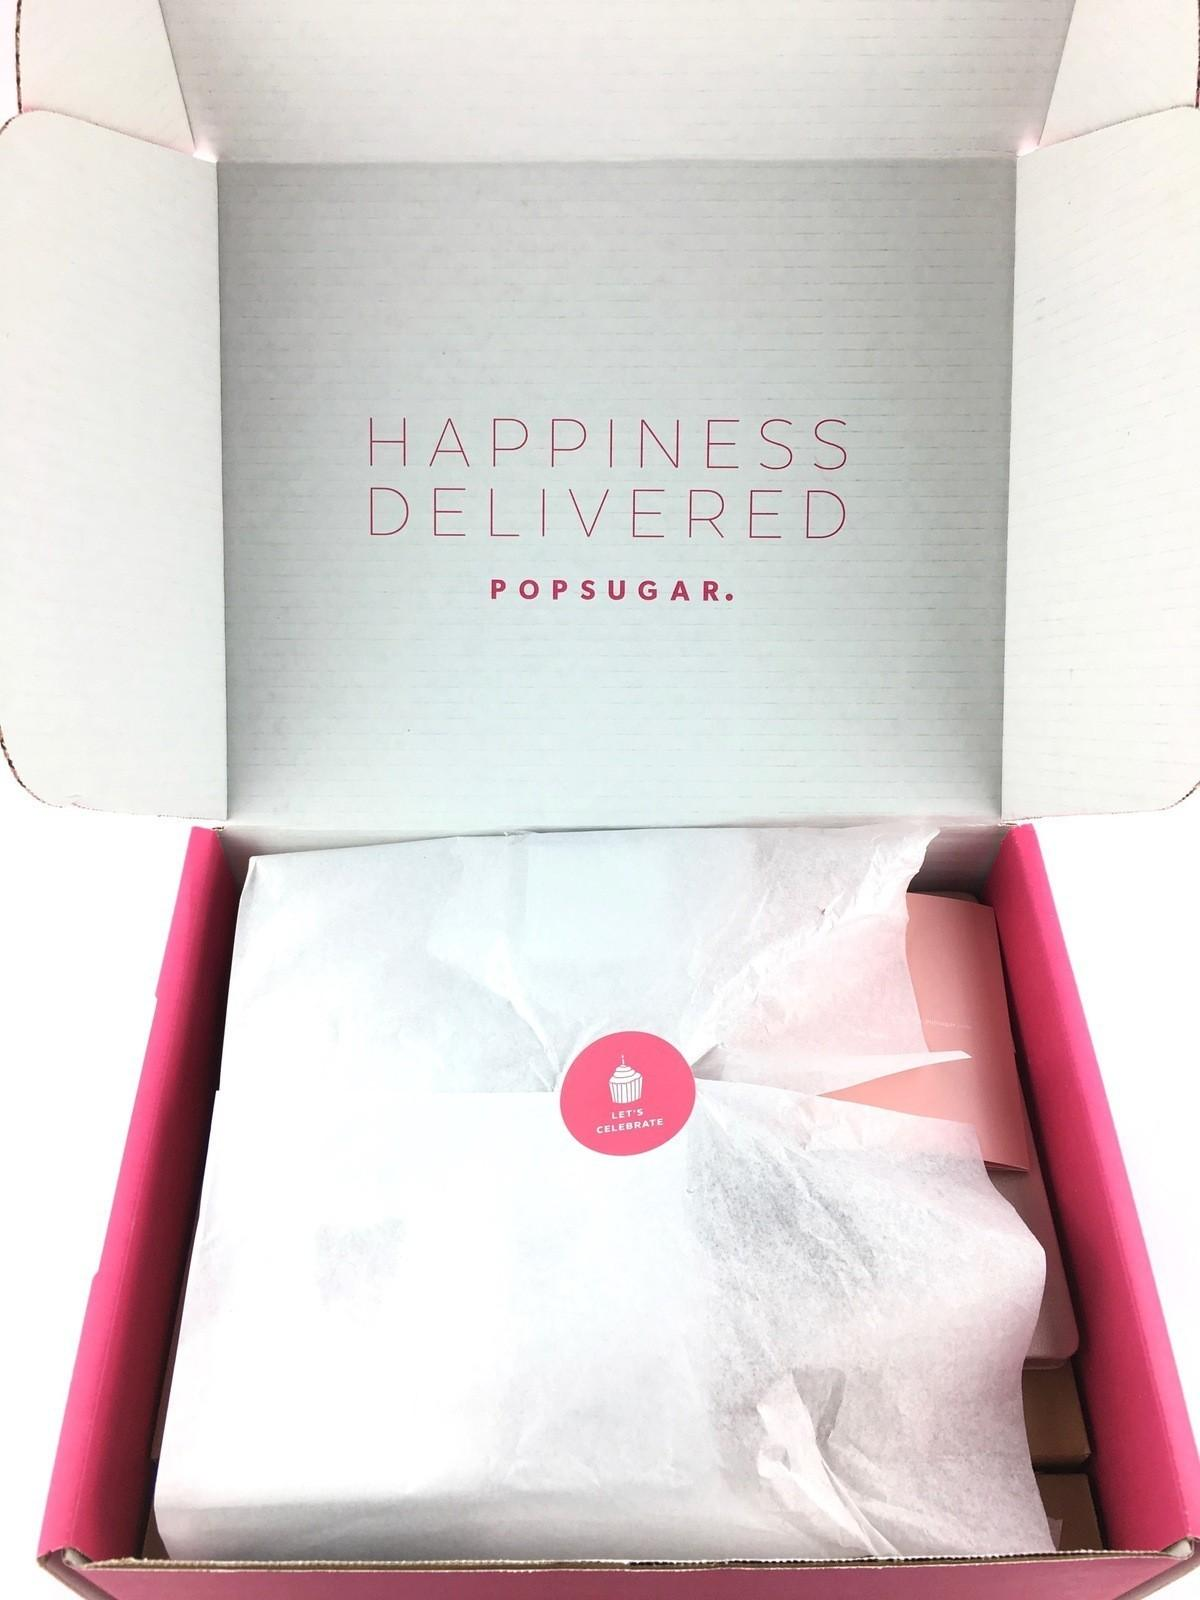 POPSUGAR Must Have has made the Winter POPSUGAR Must Have Box available to purchase and released the second spoiler! Customization time is here too – find that info at the end of this post. DEAL: If you'd like to guarantee the Winter box use coupon code adoption-funds.ml customers use UJ20 to save $20!